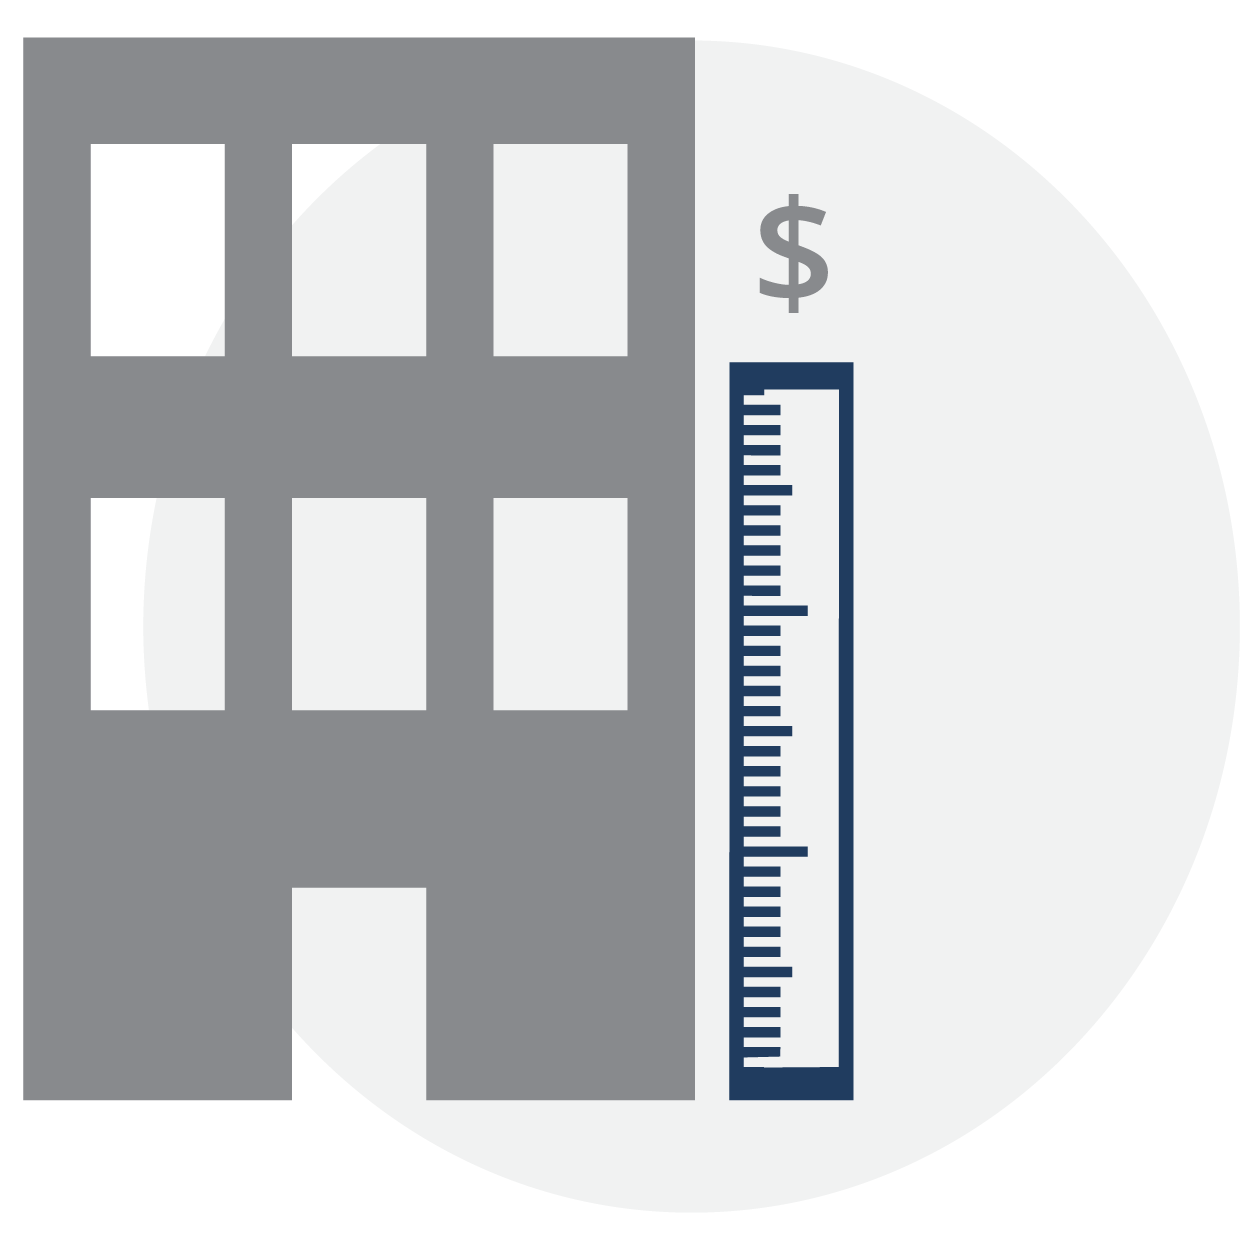 Building Size Icon